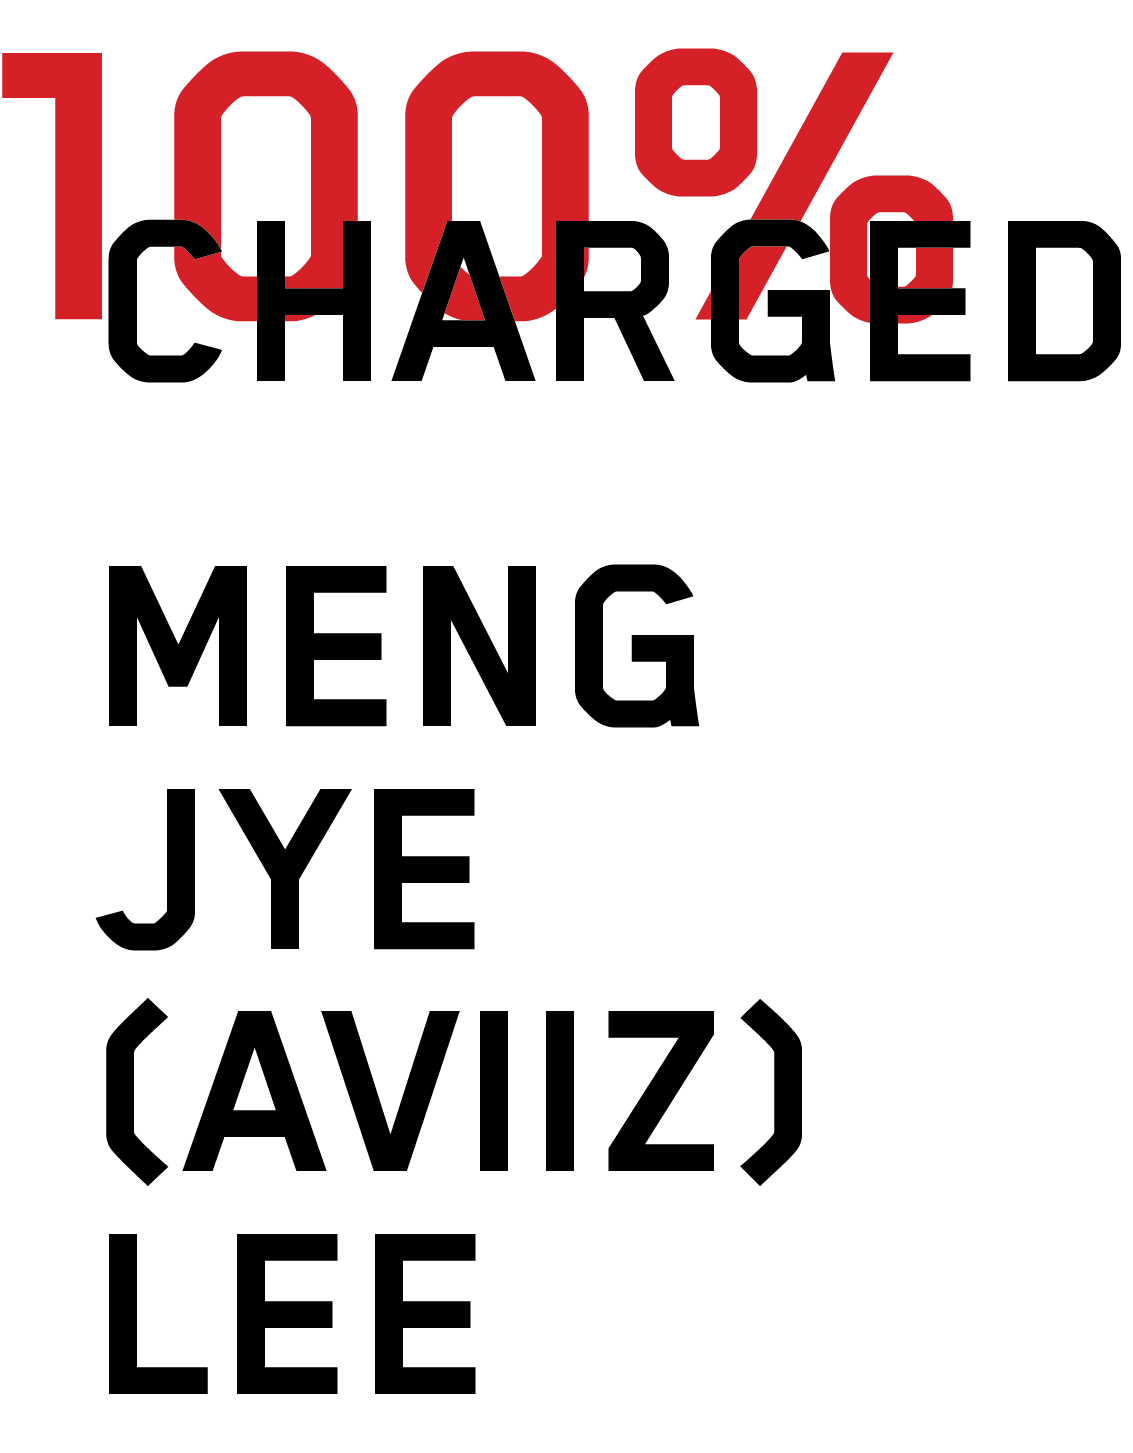 100% CHARGED